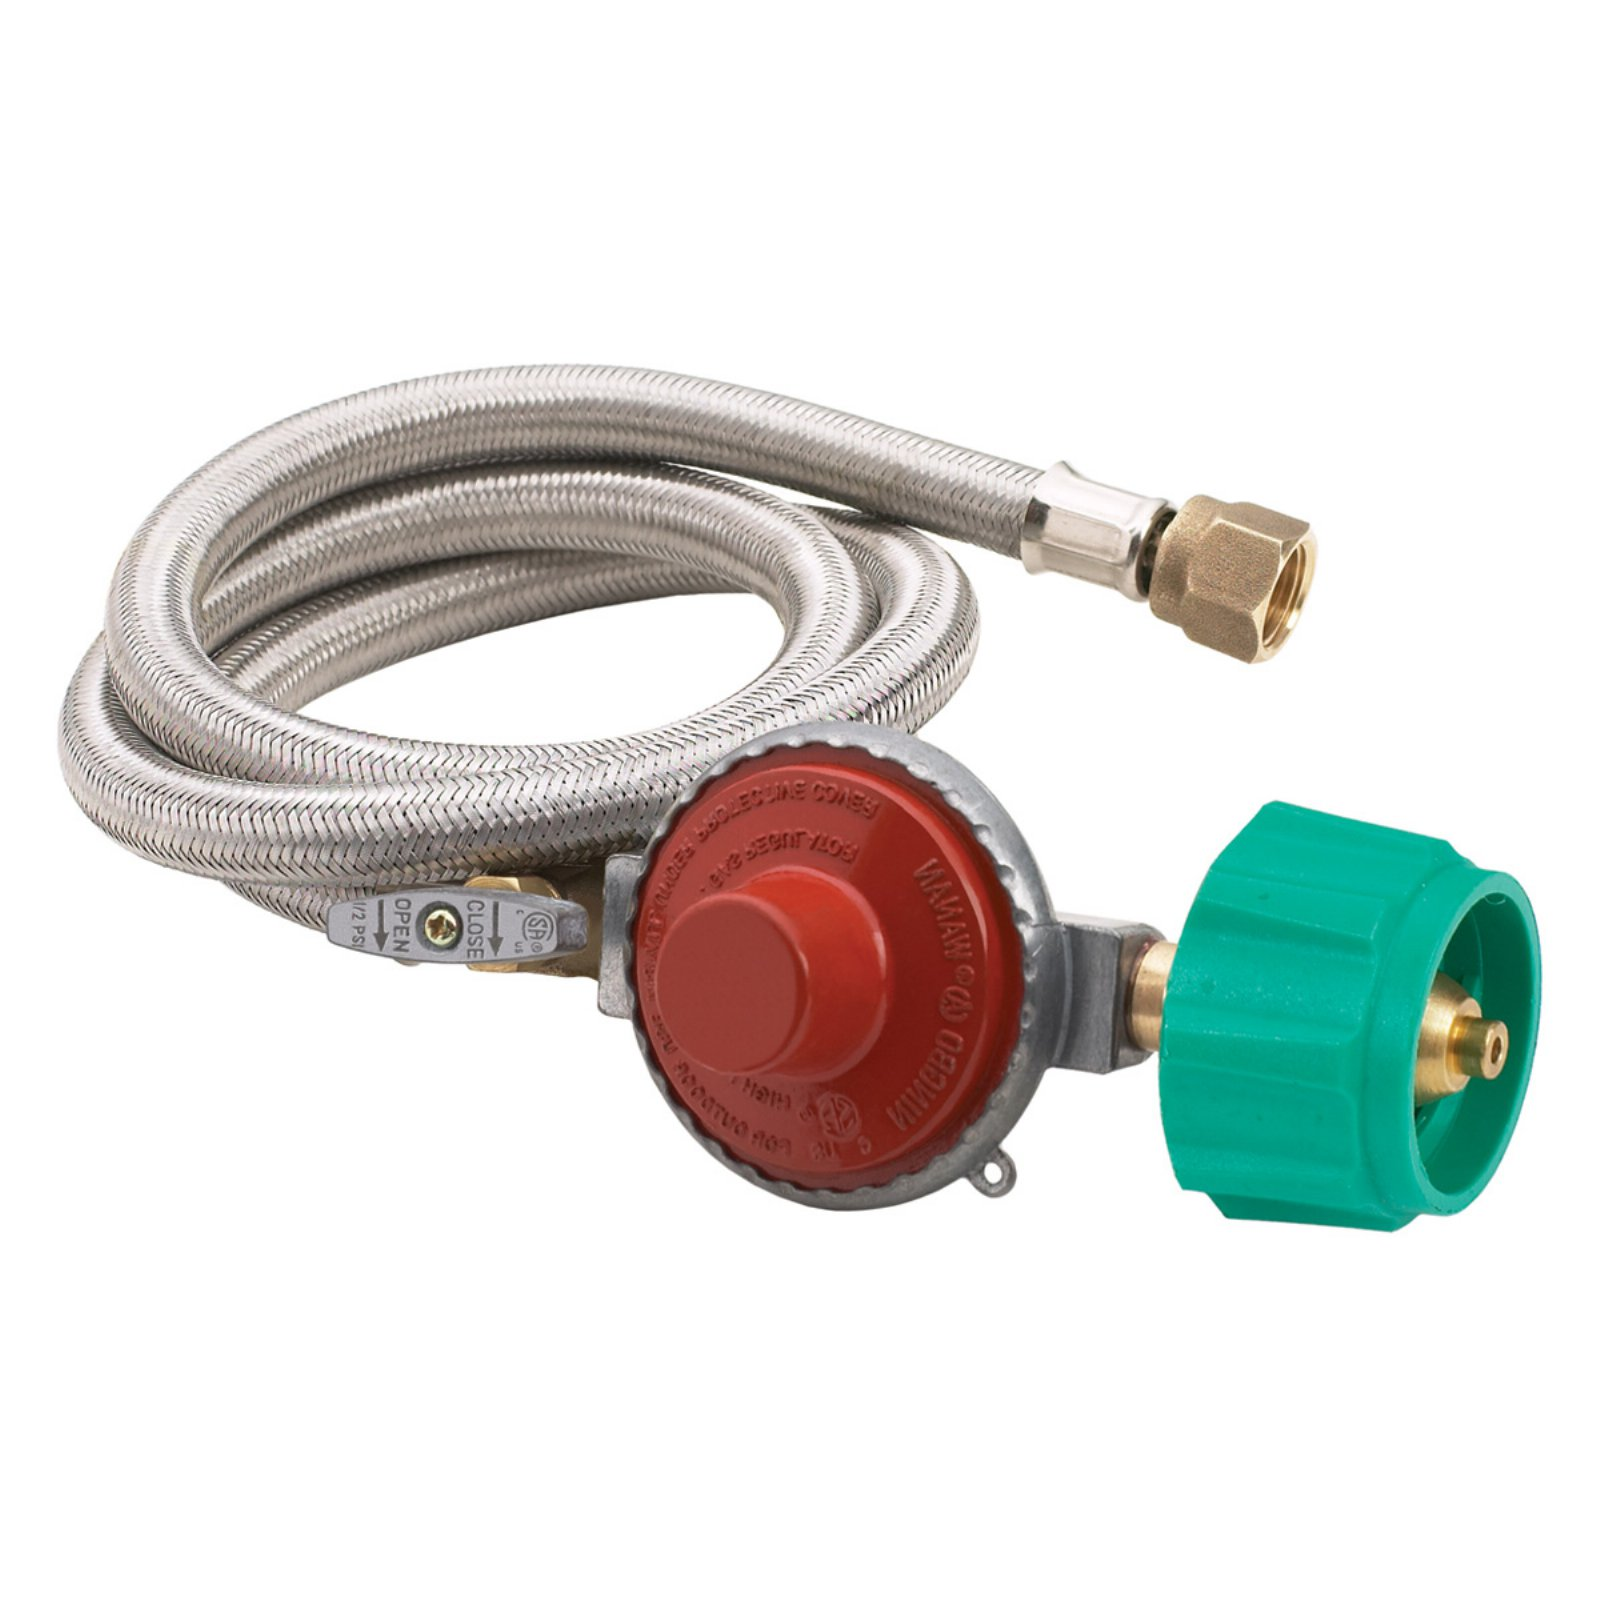 Bayou Classics 48 in. Stainless Steel Braided Hose with Regulator - 20 psi